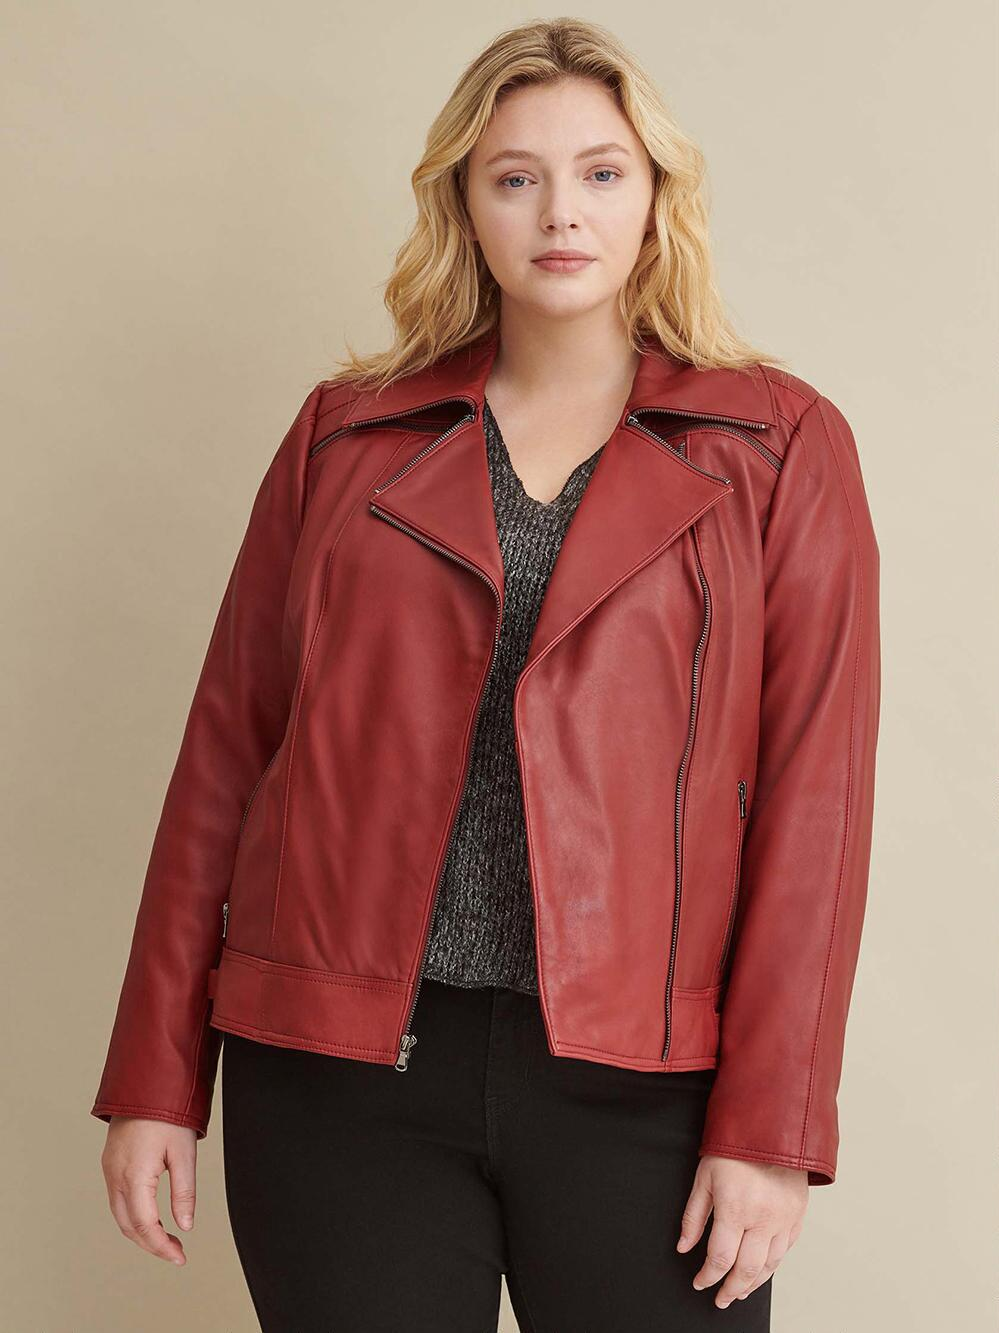 Red Leather Jacket with Zipper For Women